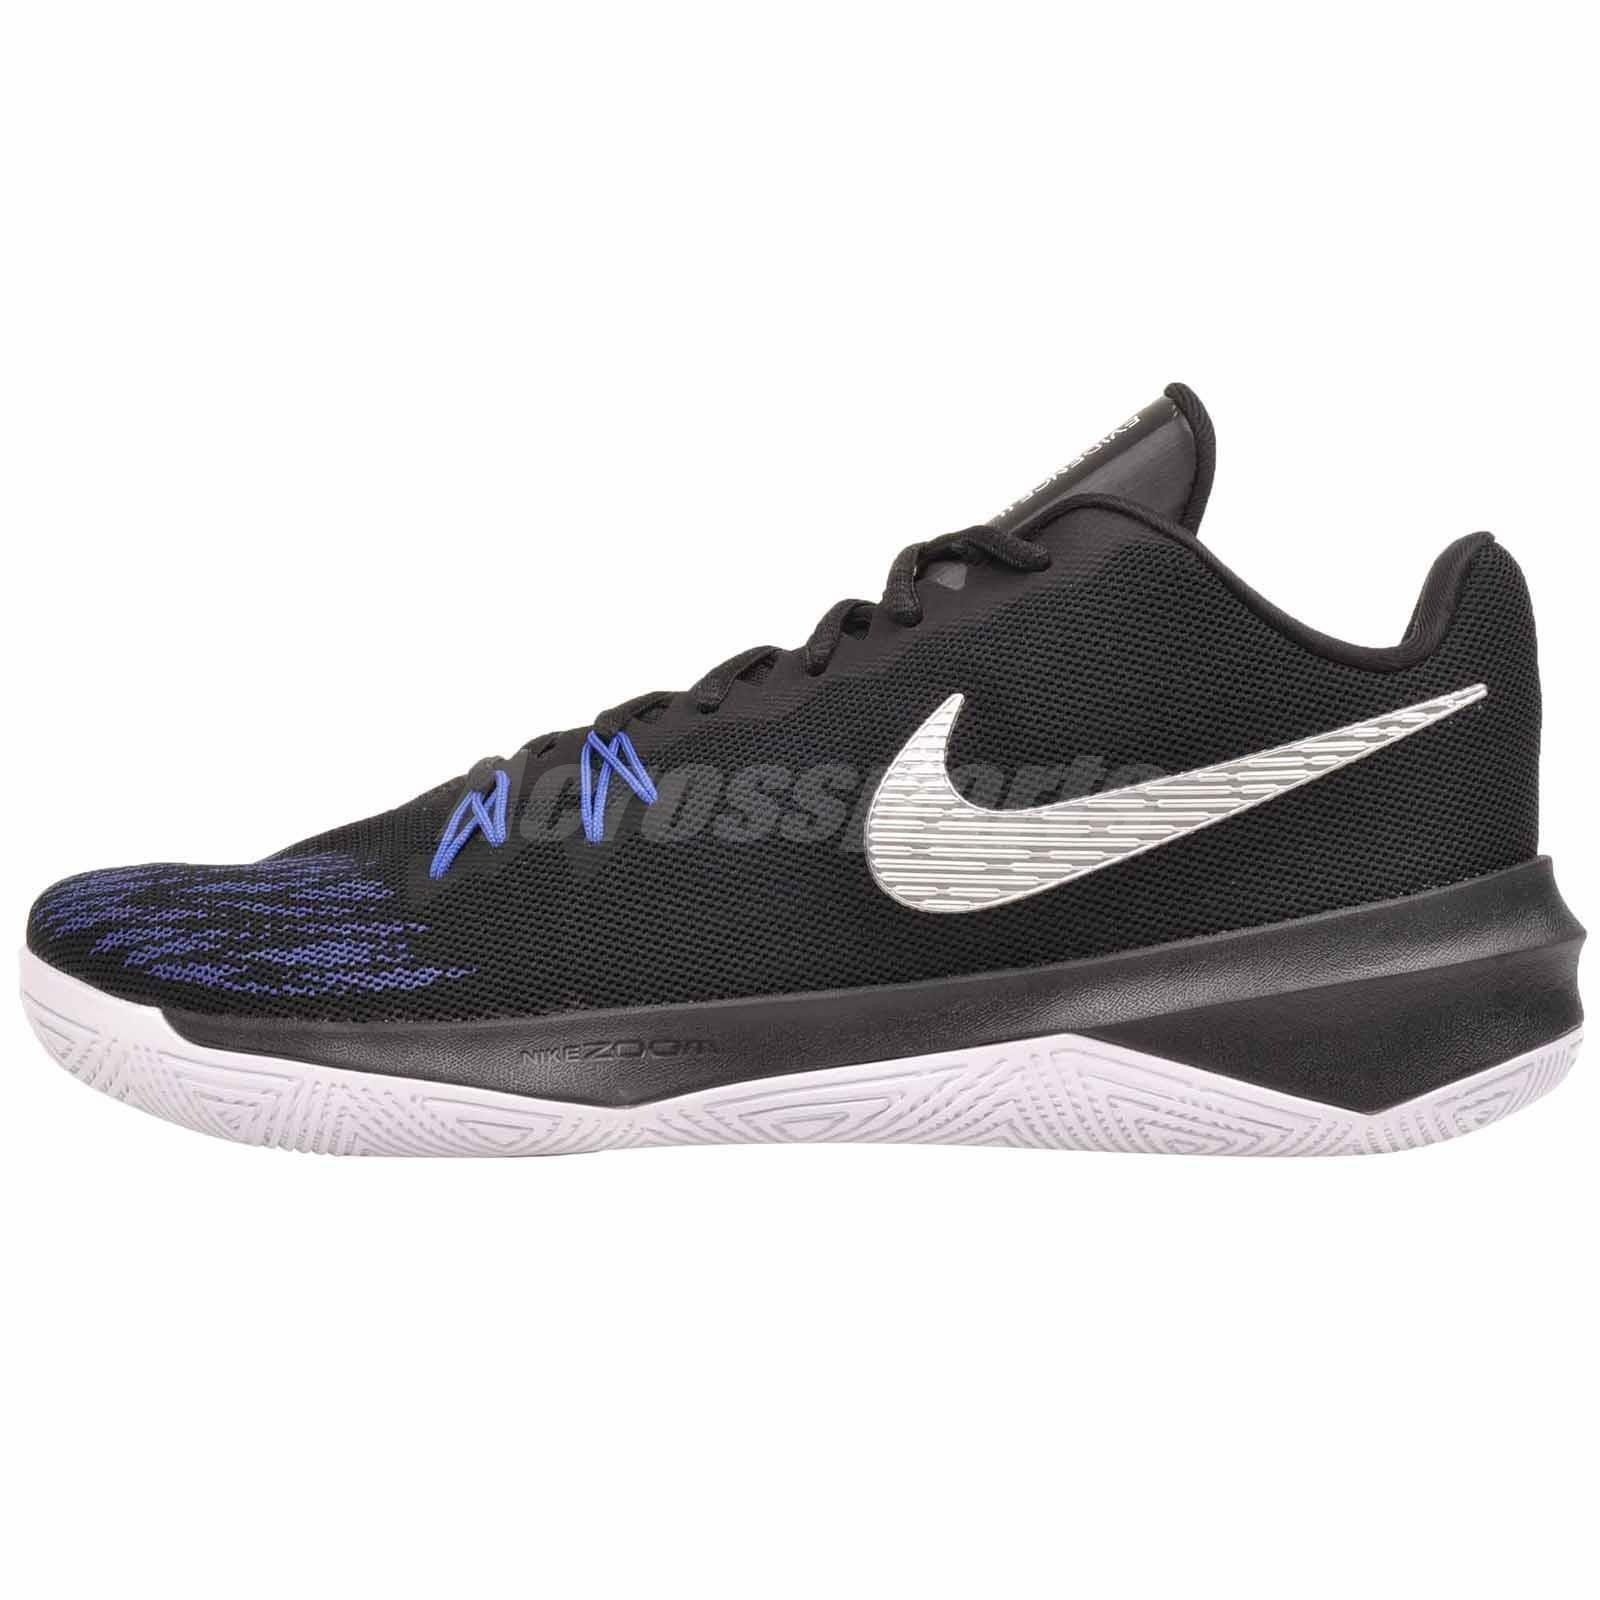 Nike Zoom Evidence II 2 Basketball Mens shoes Black Silver 908976-004